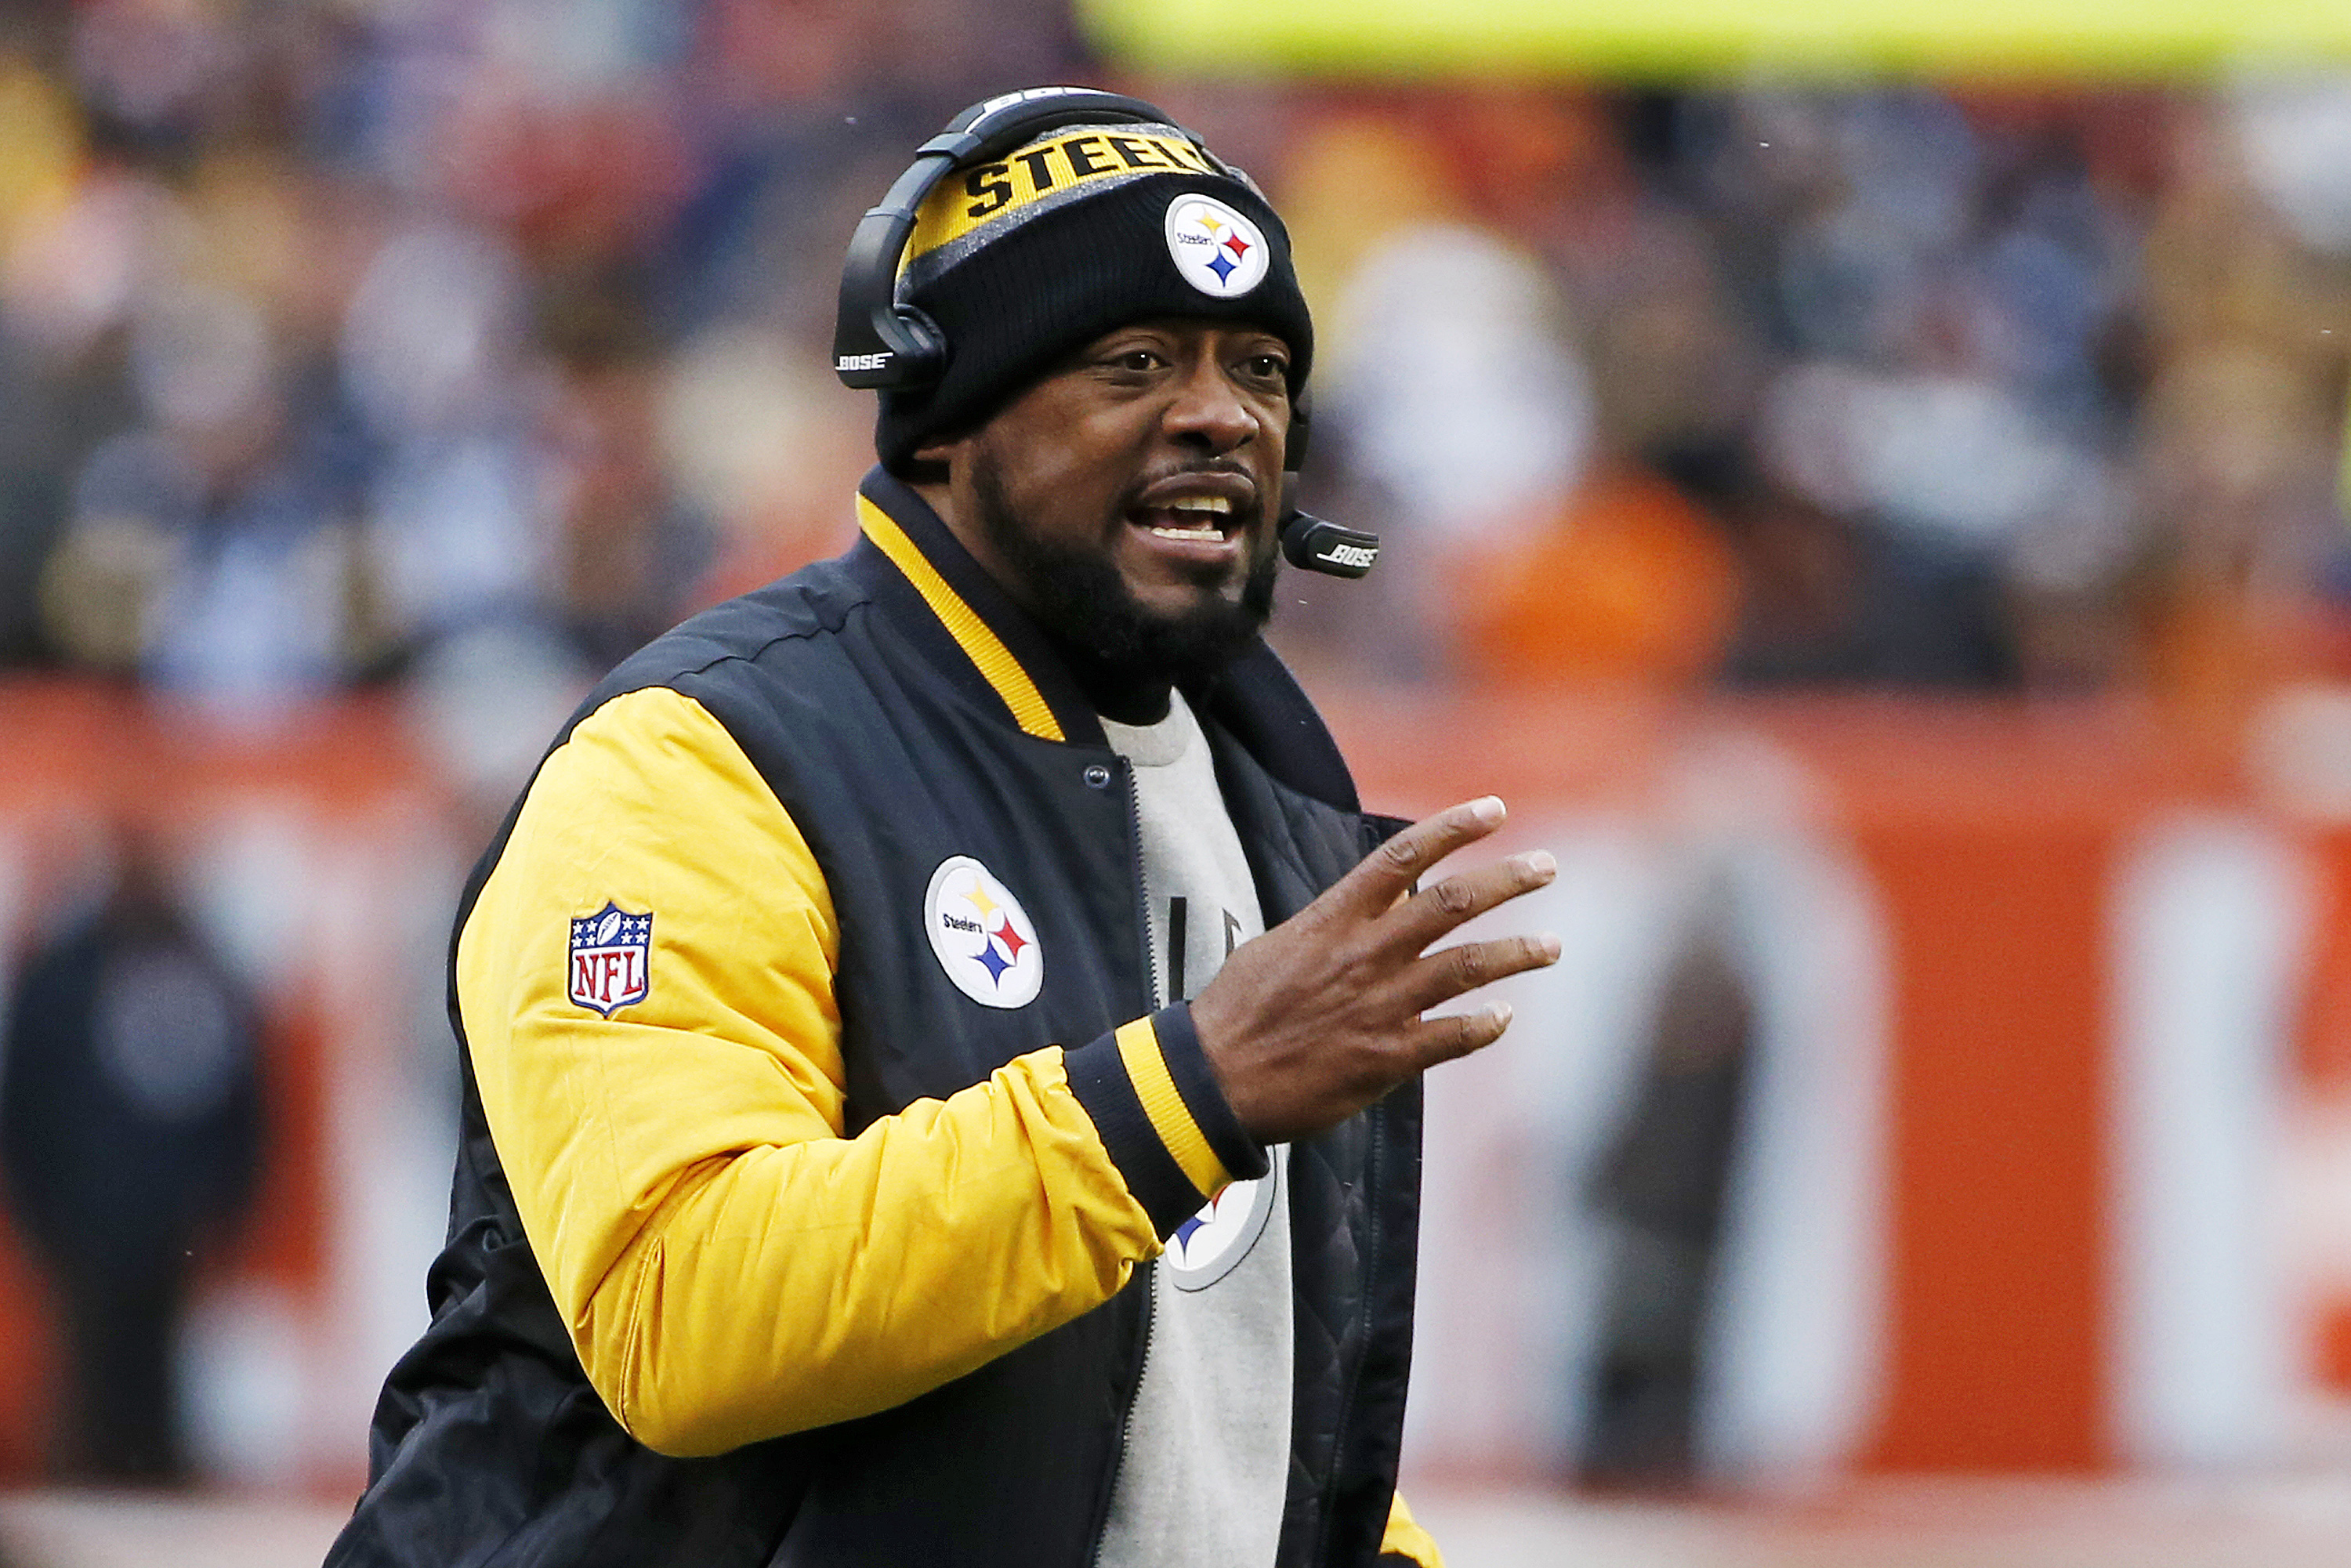 FILE - In a Sunday, Nov. 20, 2016 file photo, Pittsburgh Steelers head coach Mike Tomlin yells at an official during the first half of an NFL football game against the Cleveland Browns in Cleveland. The Steelers (10-5) have already locked down the AFC Nor